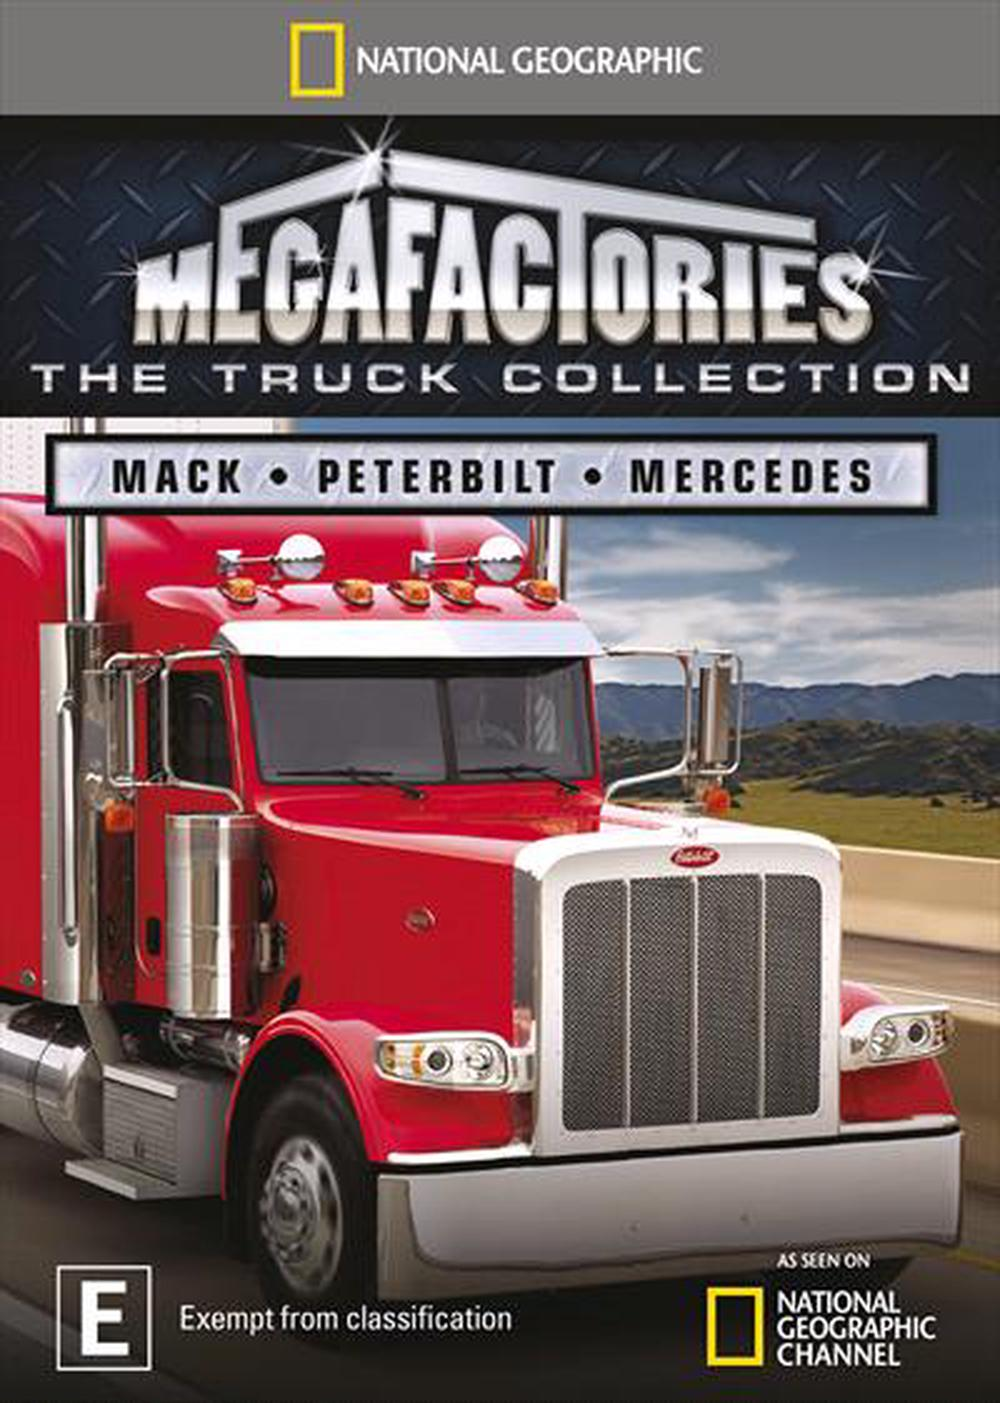 National Geographic - Megafactories - Truck Collection, The